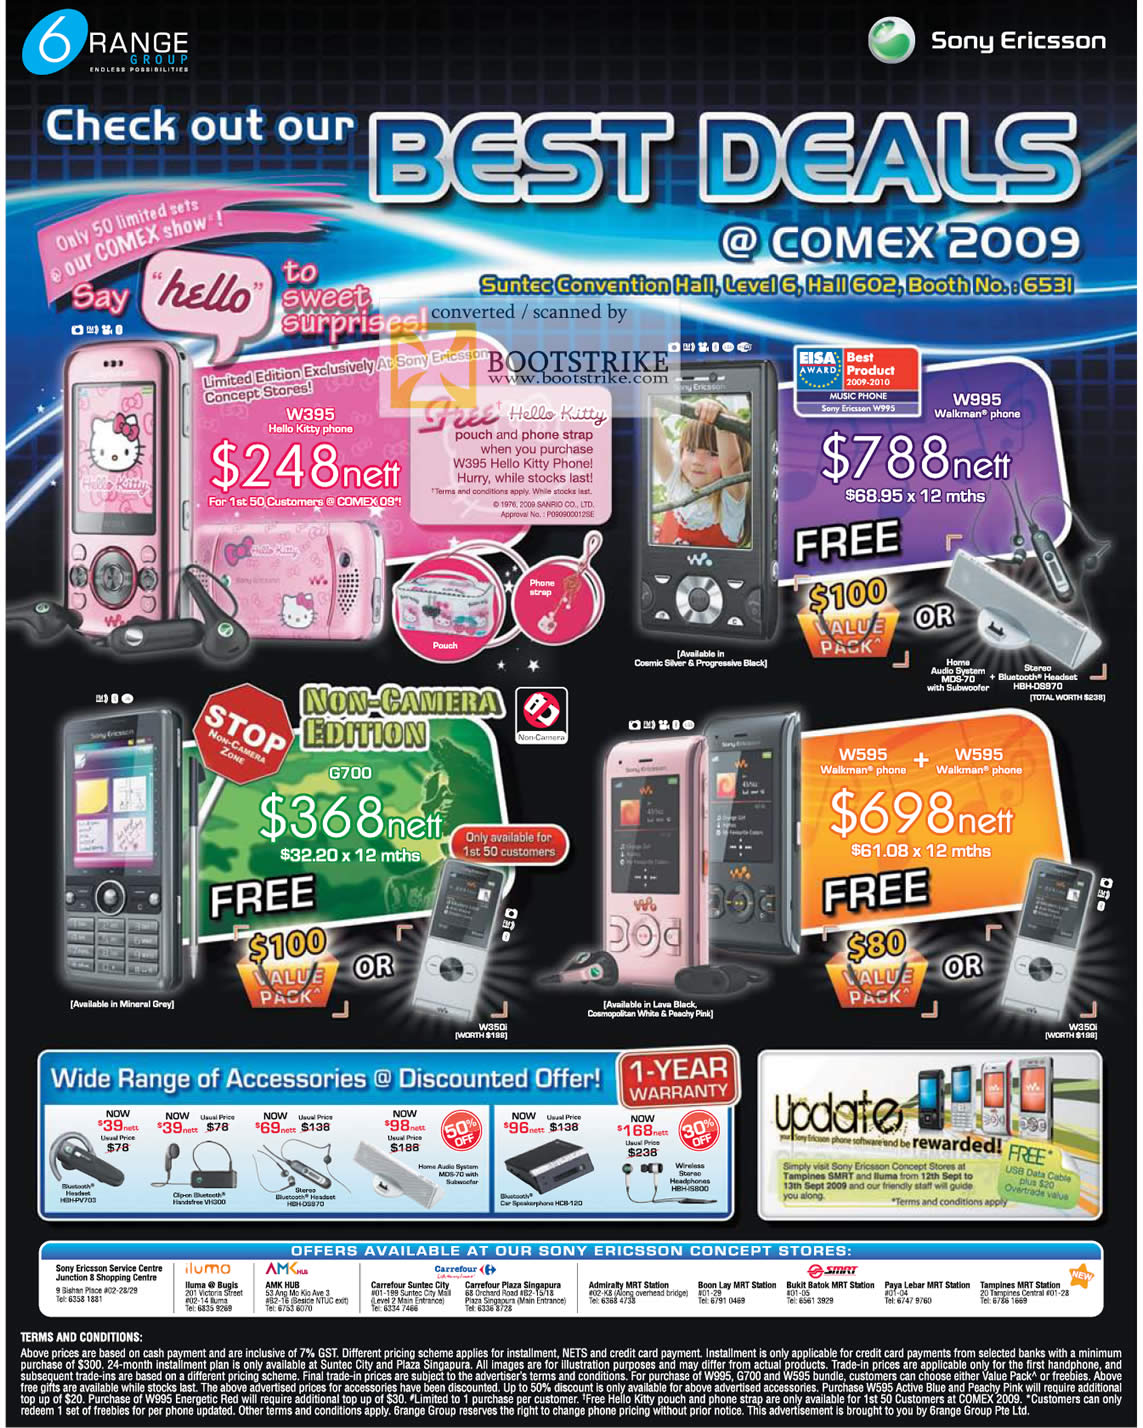 Comex 2009 price list image brochure of 6Range Sony Ericsson Walkman W395 W995 G700 W595 Hello Kitty